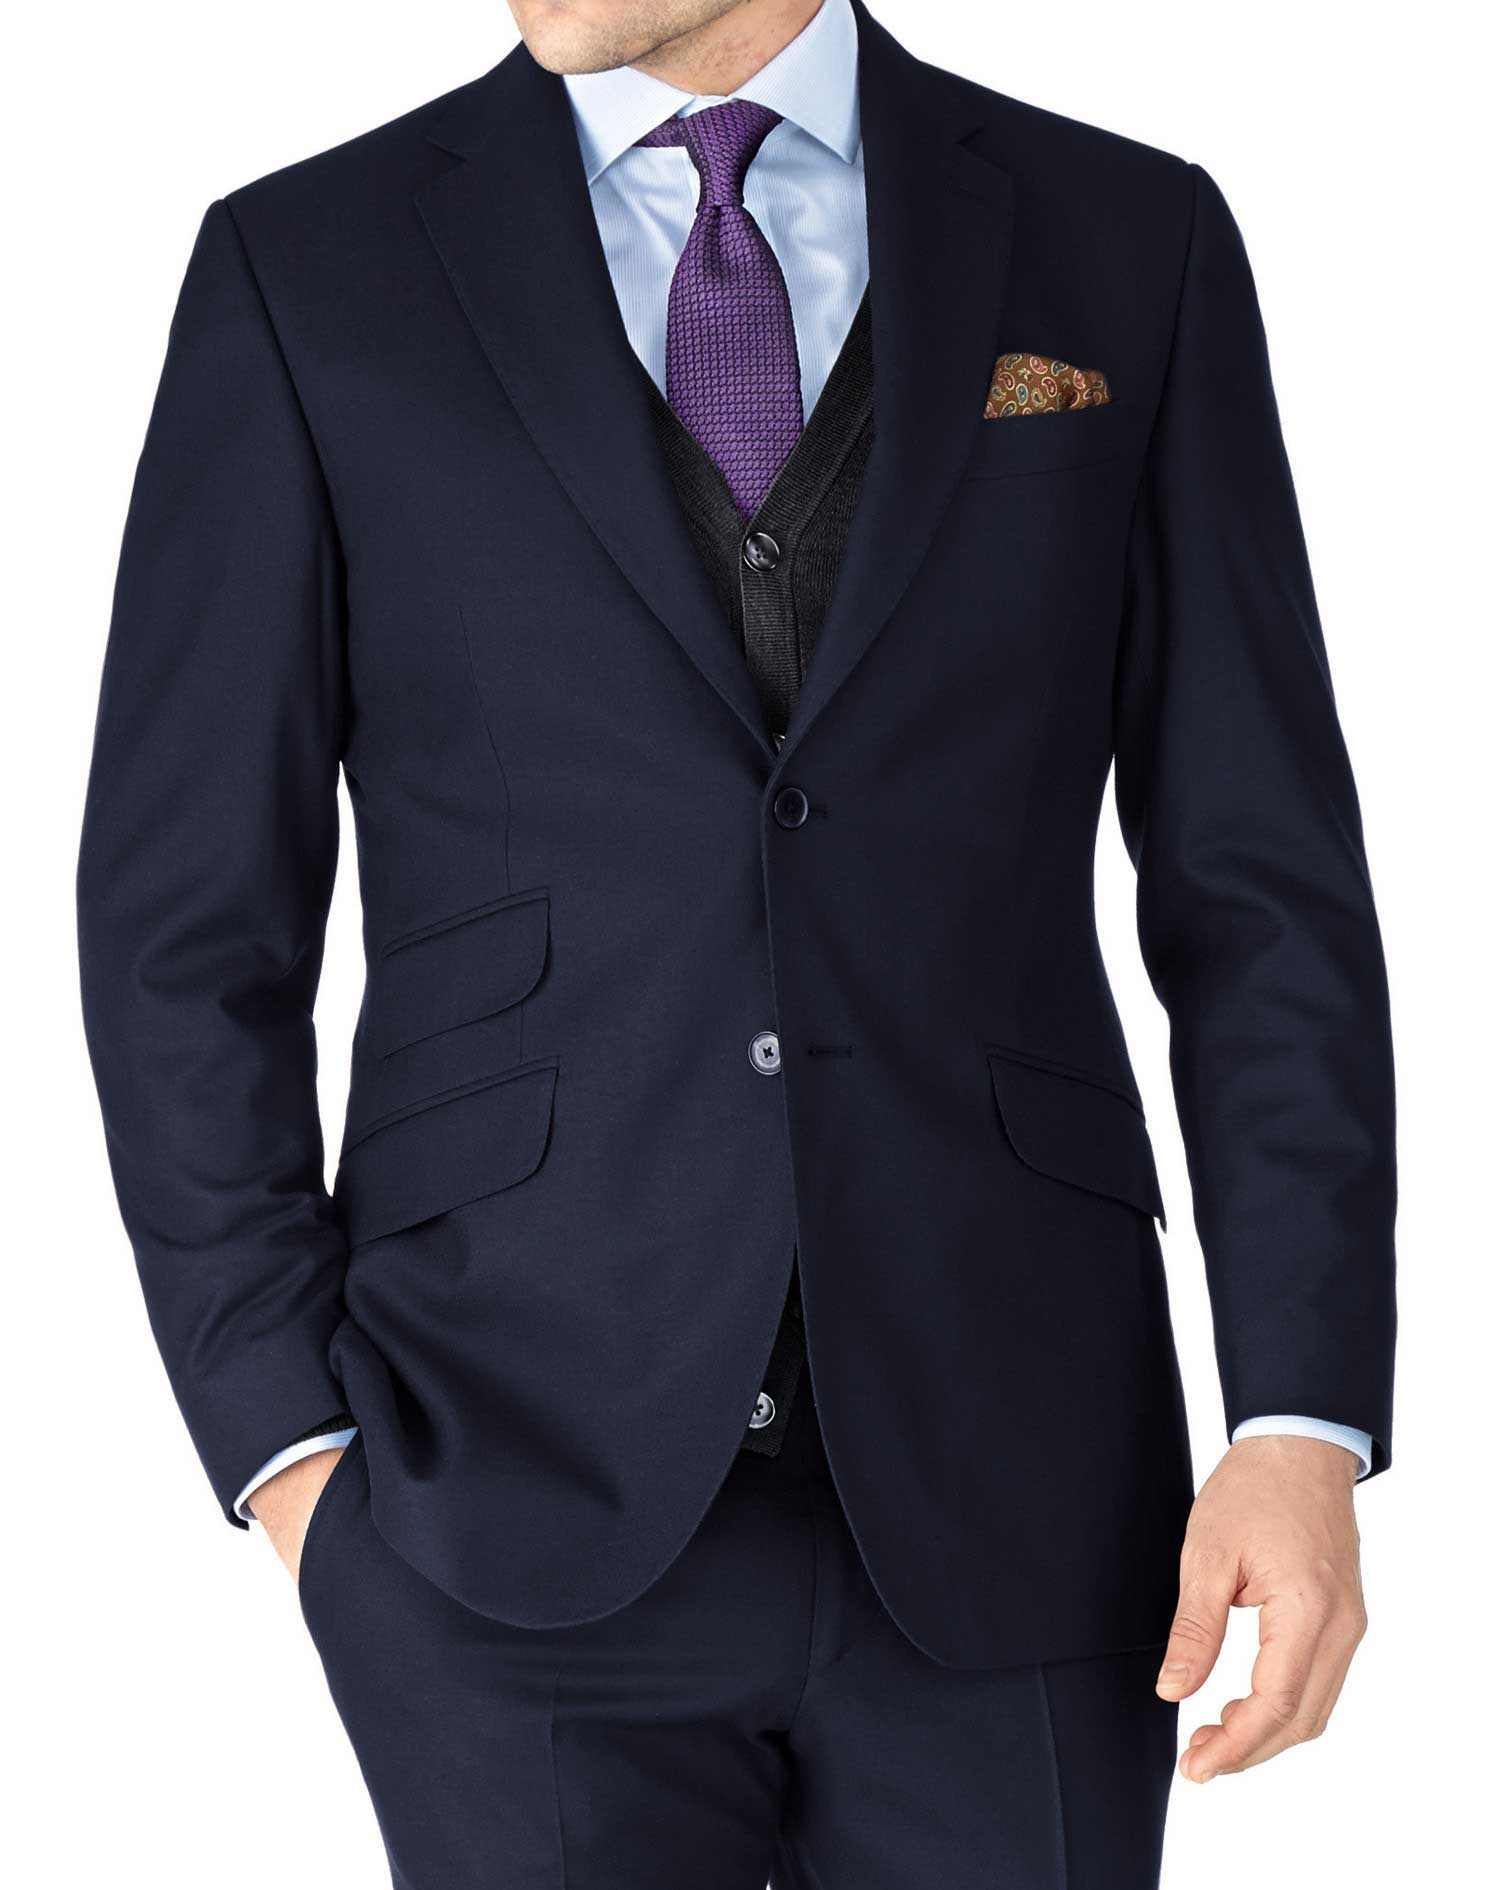 Slim Fit Serge Luxus Anzug Sakko in Marineblau